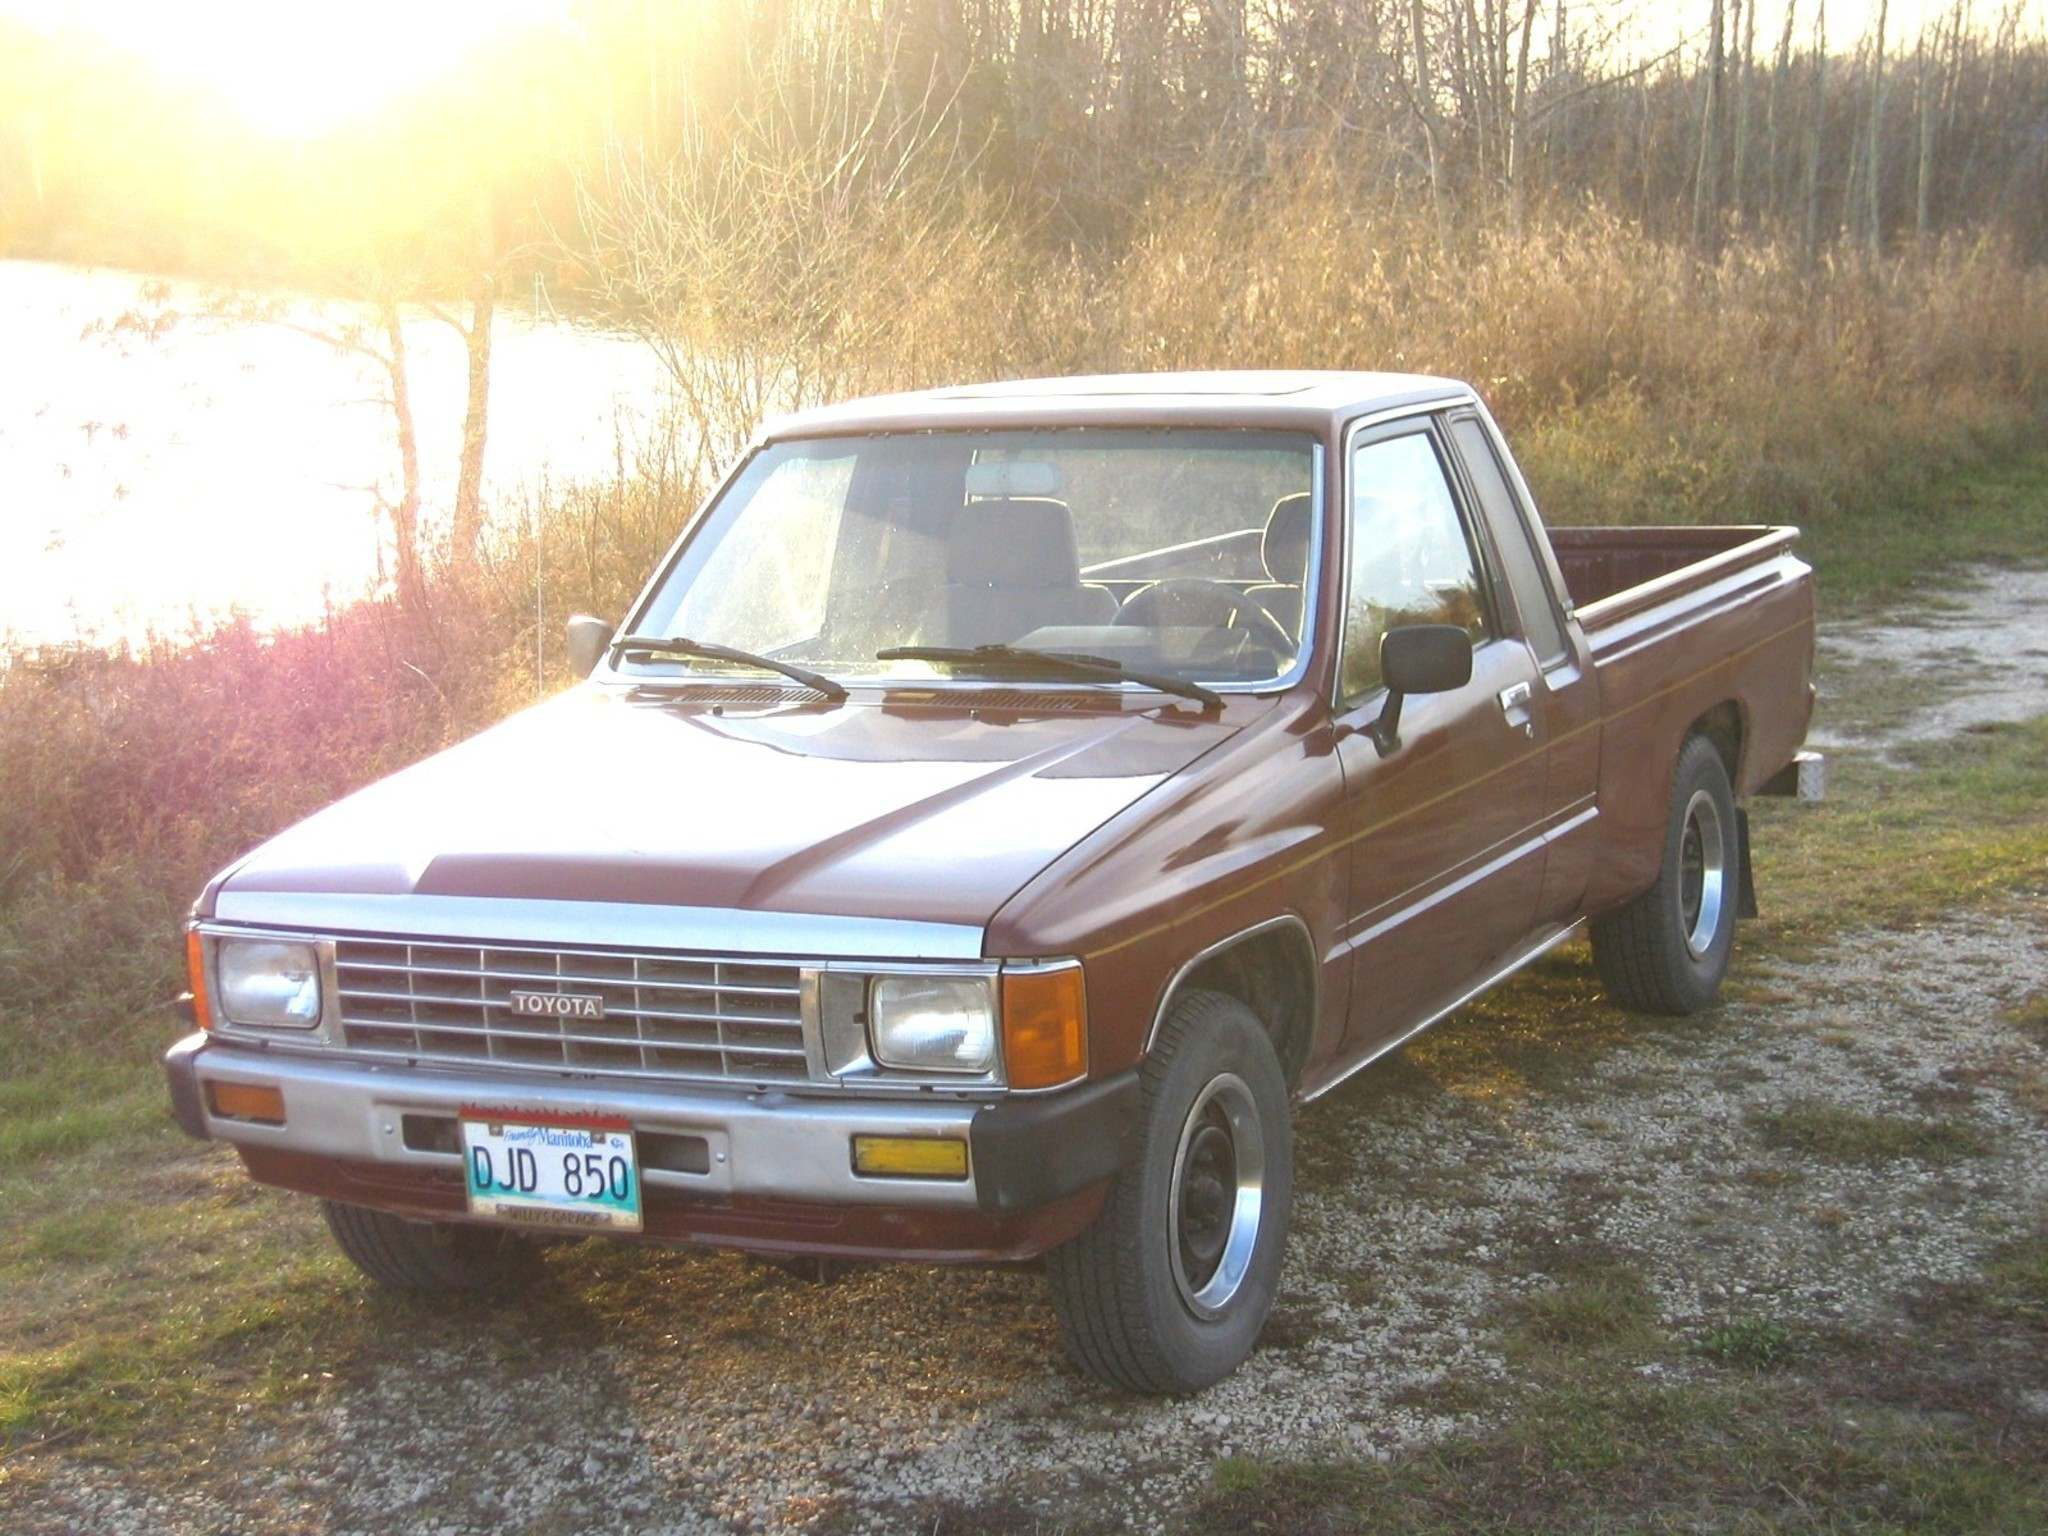 Photos by Willy Williamson / Winnipeg Free PressWilly's old 1986 Toyota pickup hadn't moved in more than a year when he bought it for $500 and spent a weekend making it safe for the road.